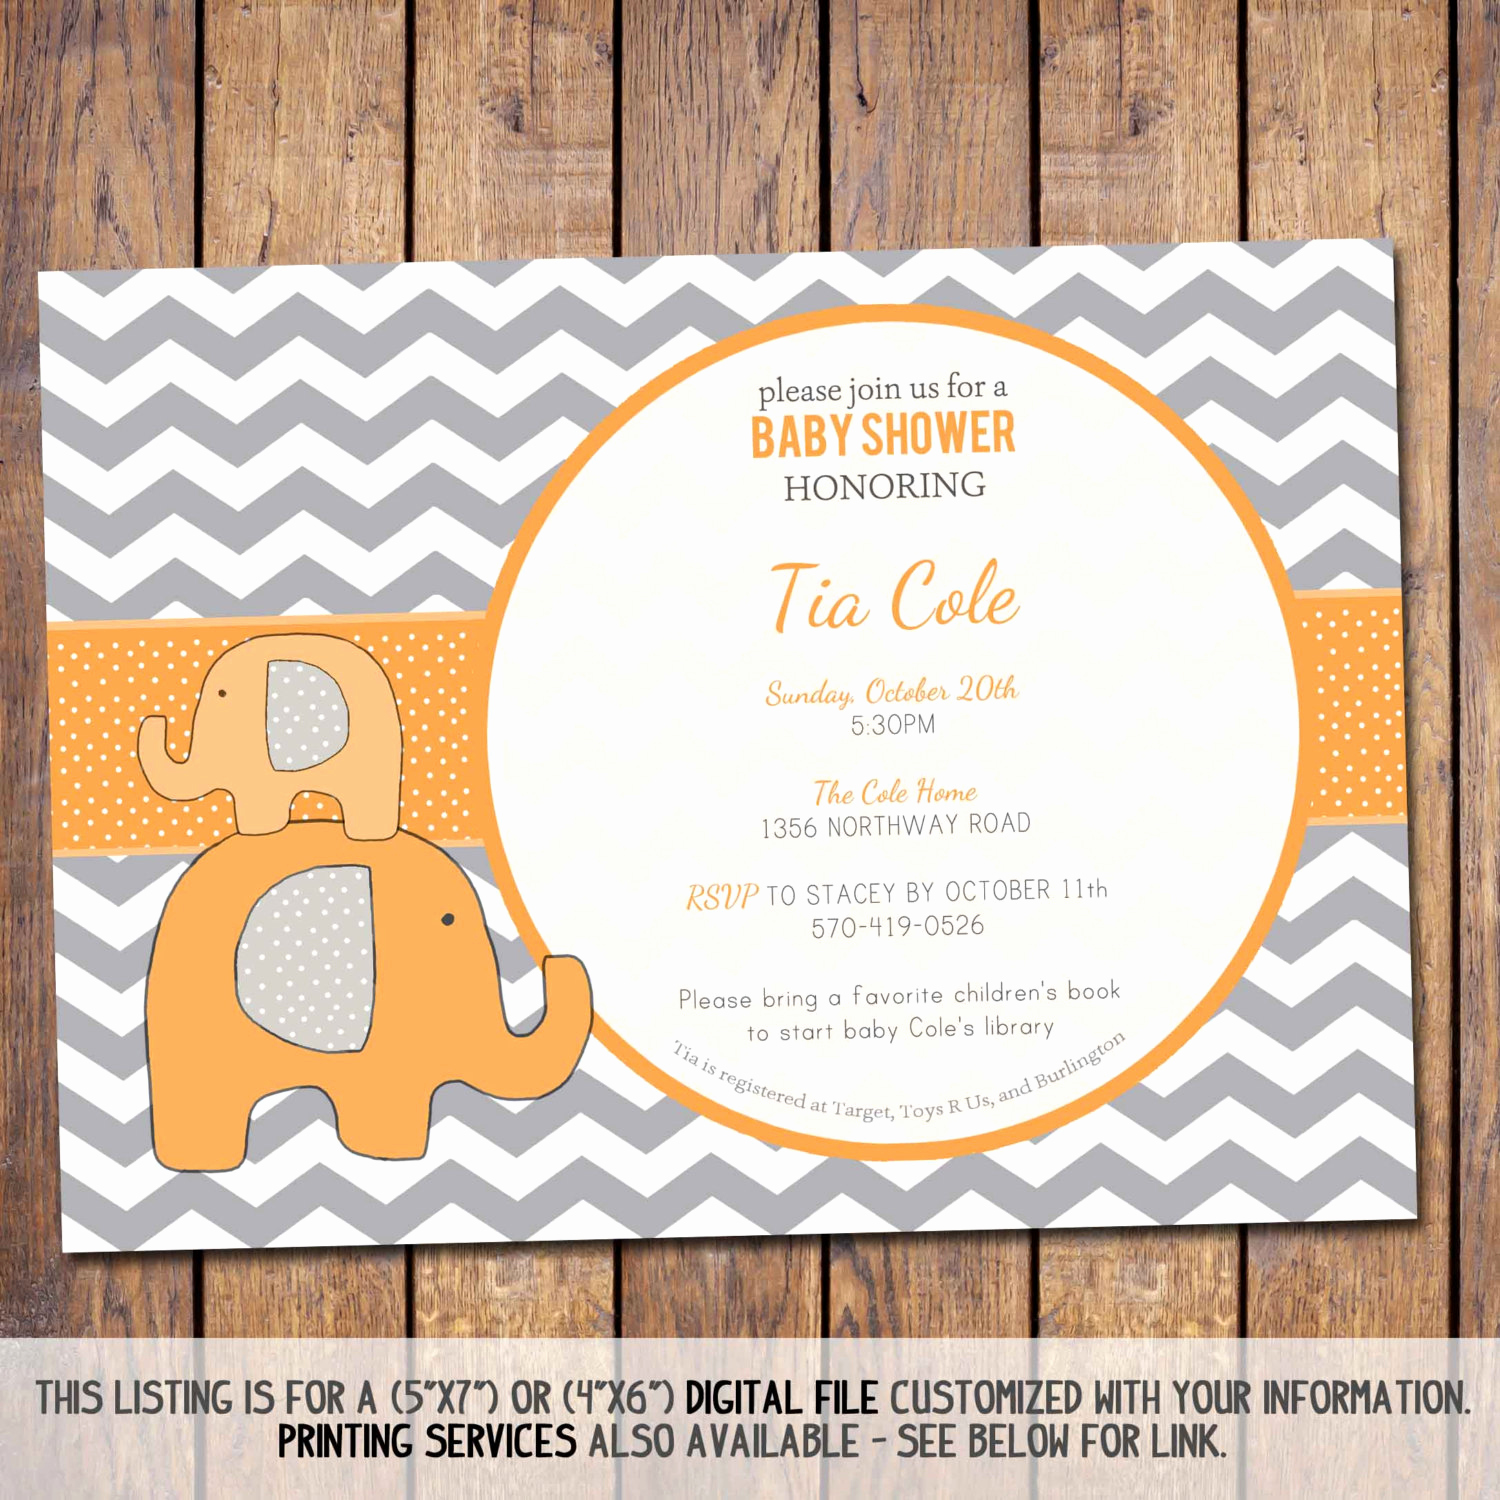 Elephant Baby Shower Invitation Elegant Elephant Baby Shower Invitation Chevron Baby Shower Invitation